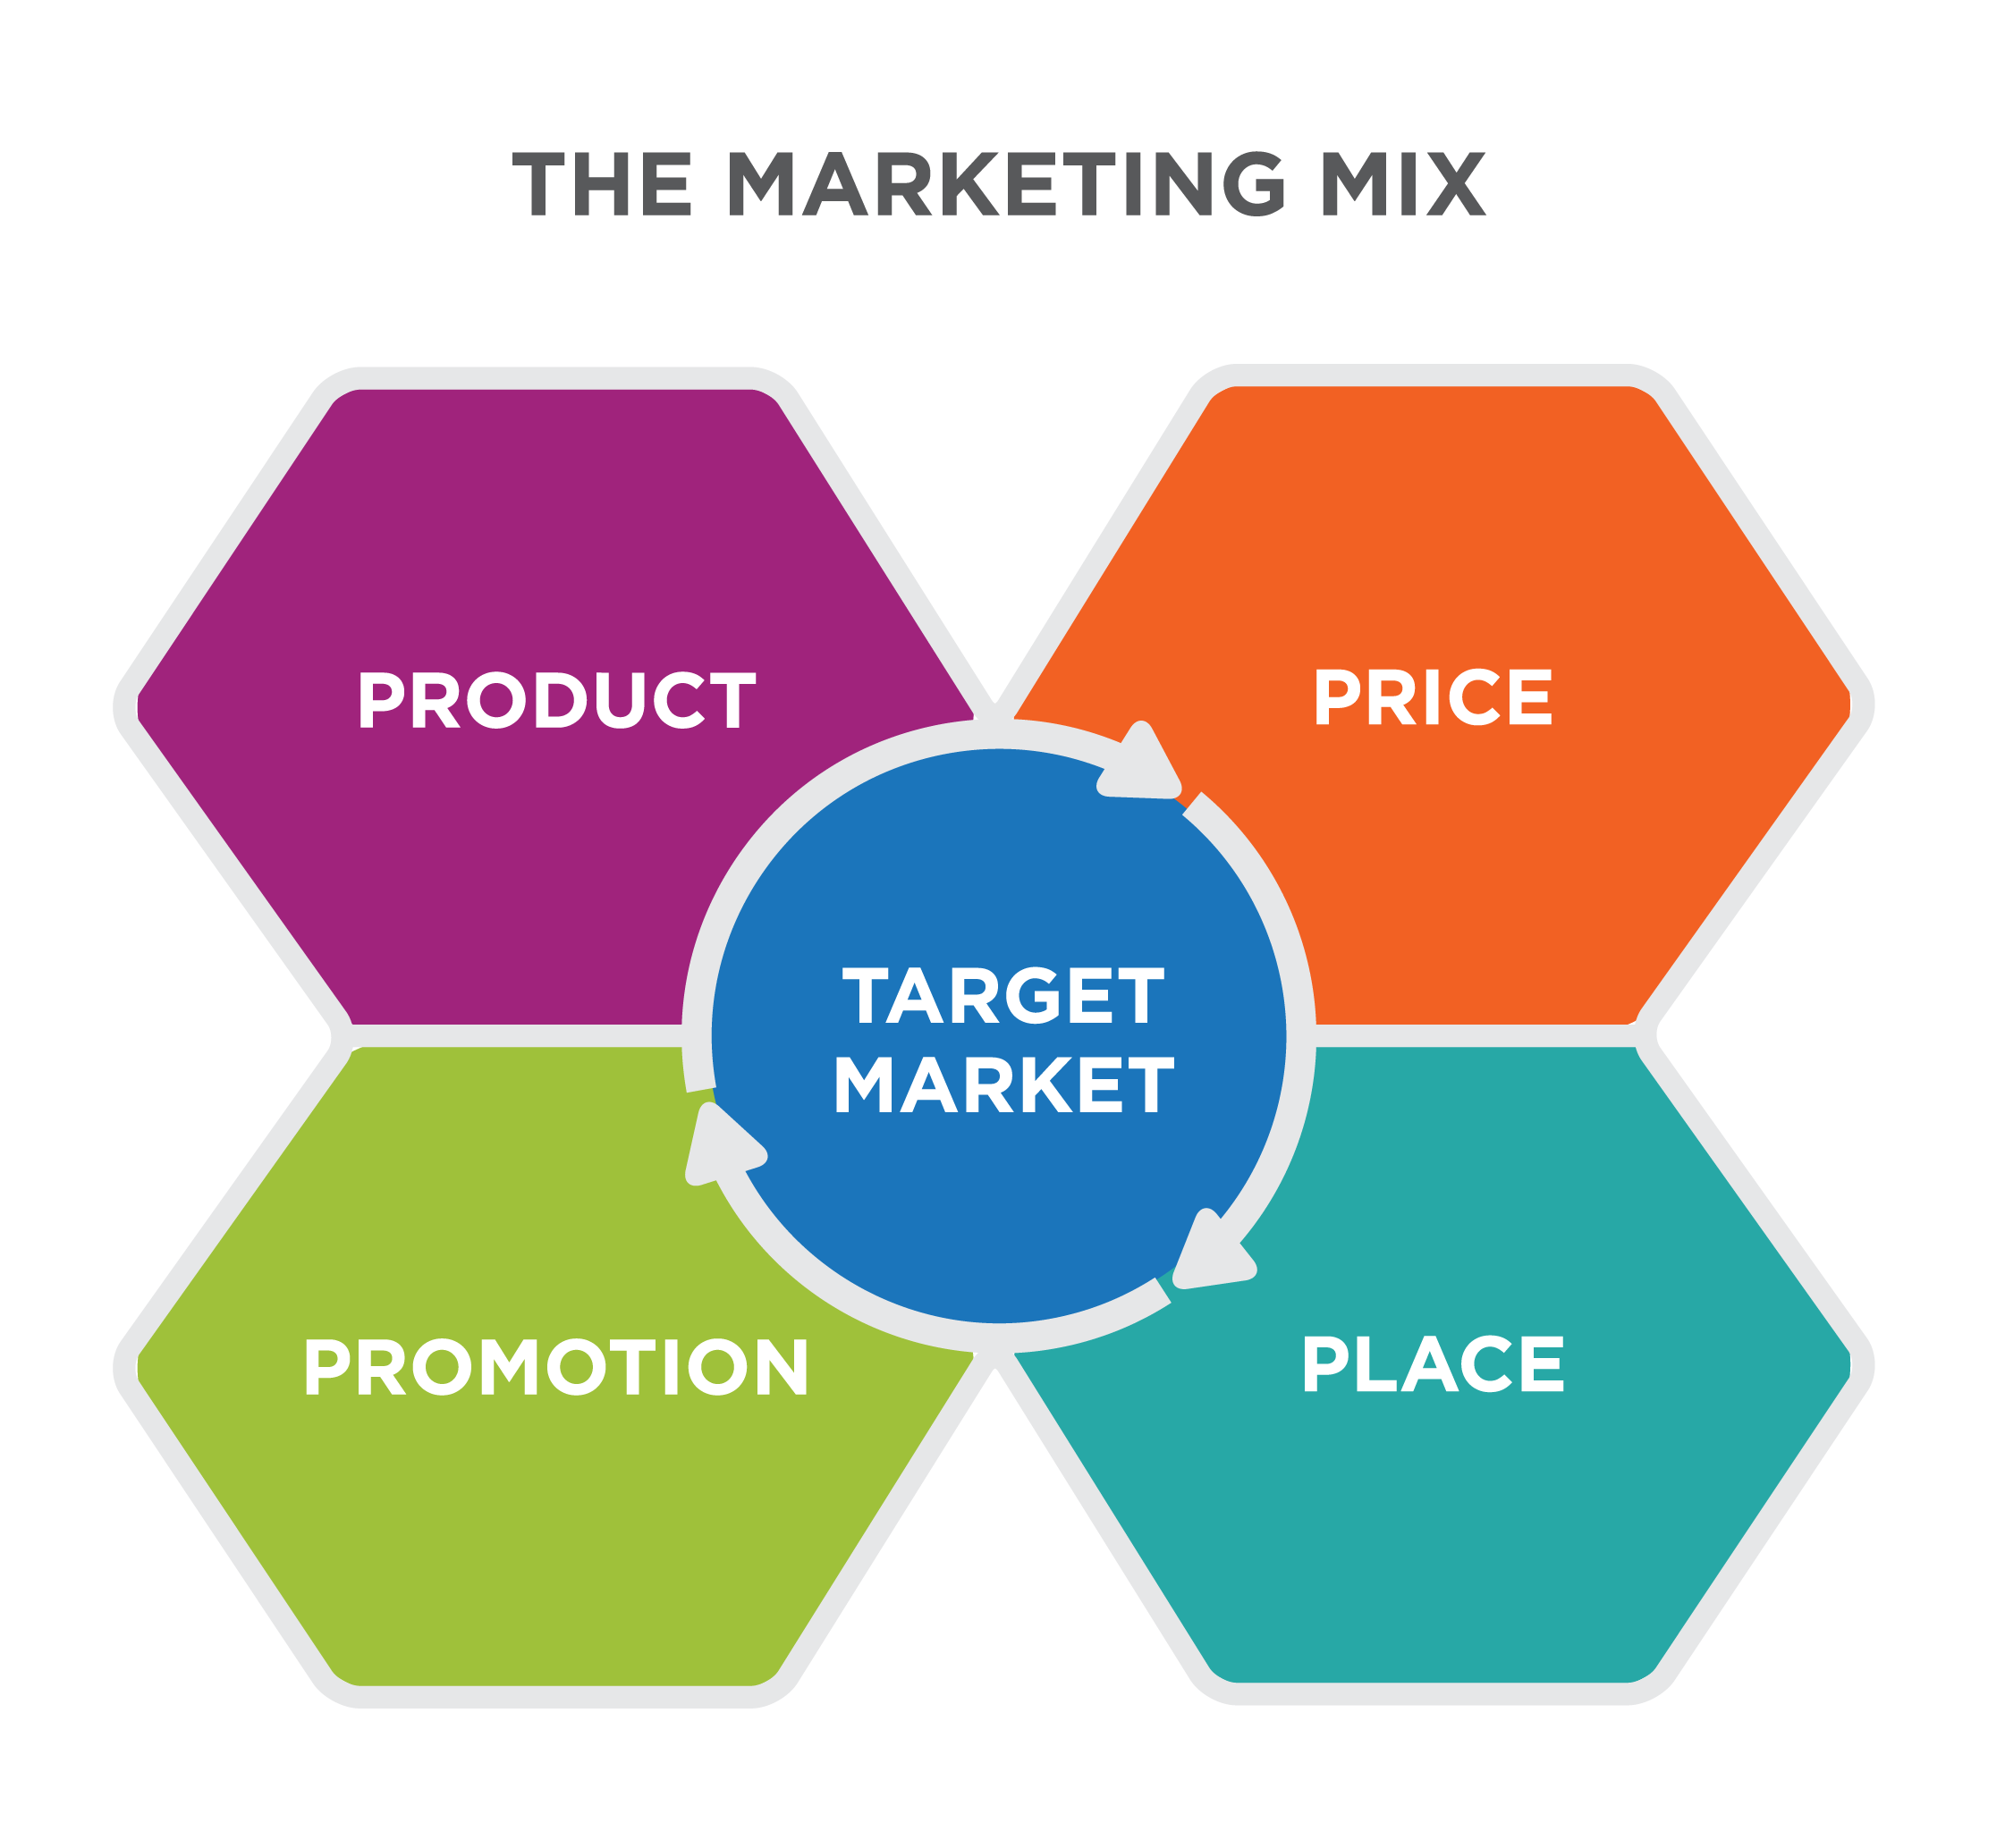 4ps of market mix Often referred to as the marketing mix, the four ps are  place decisions outline where a company sells a product and how it delivers the product to the market.